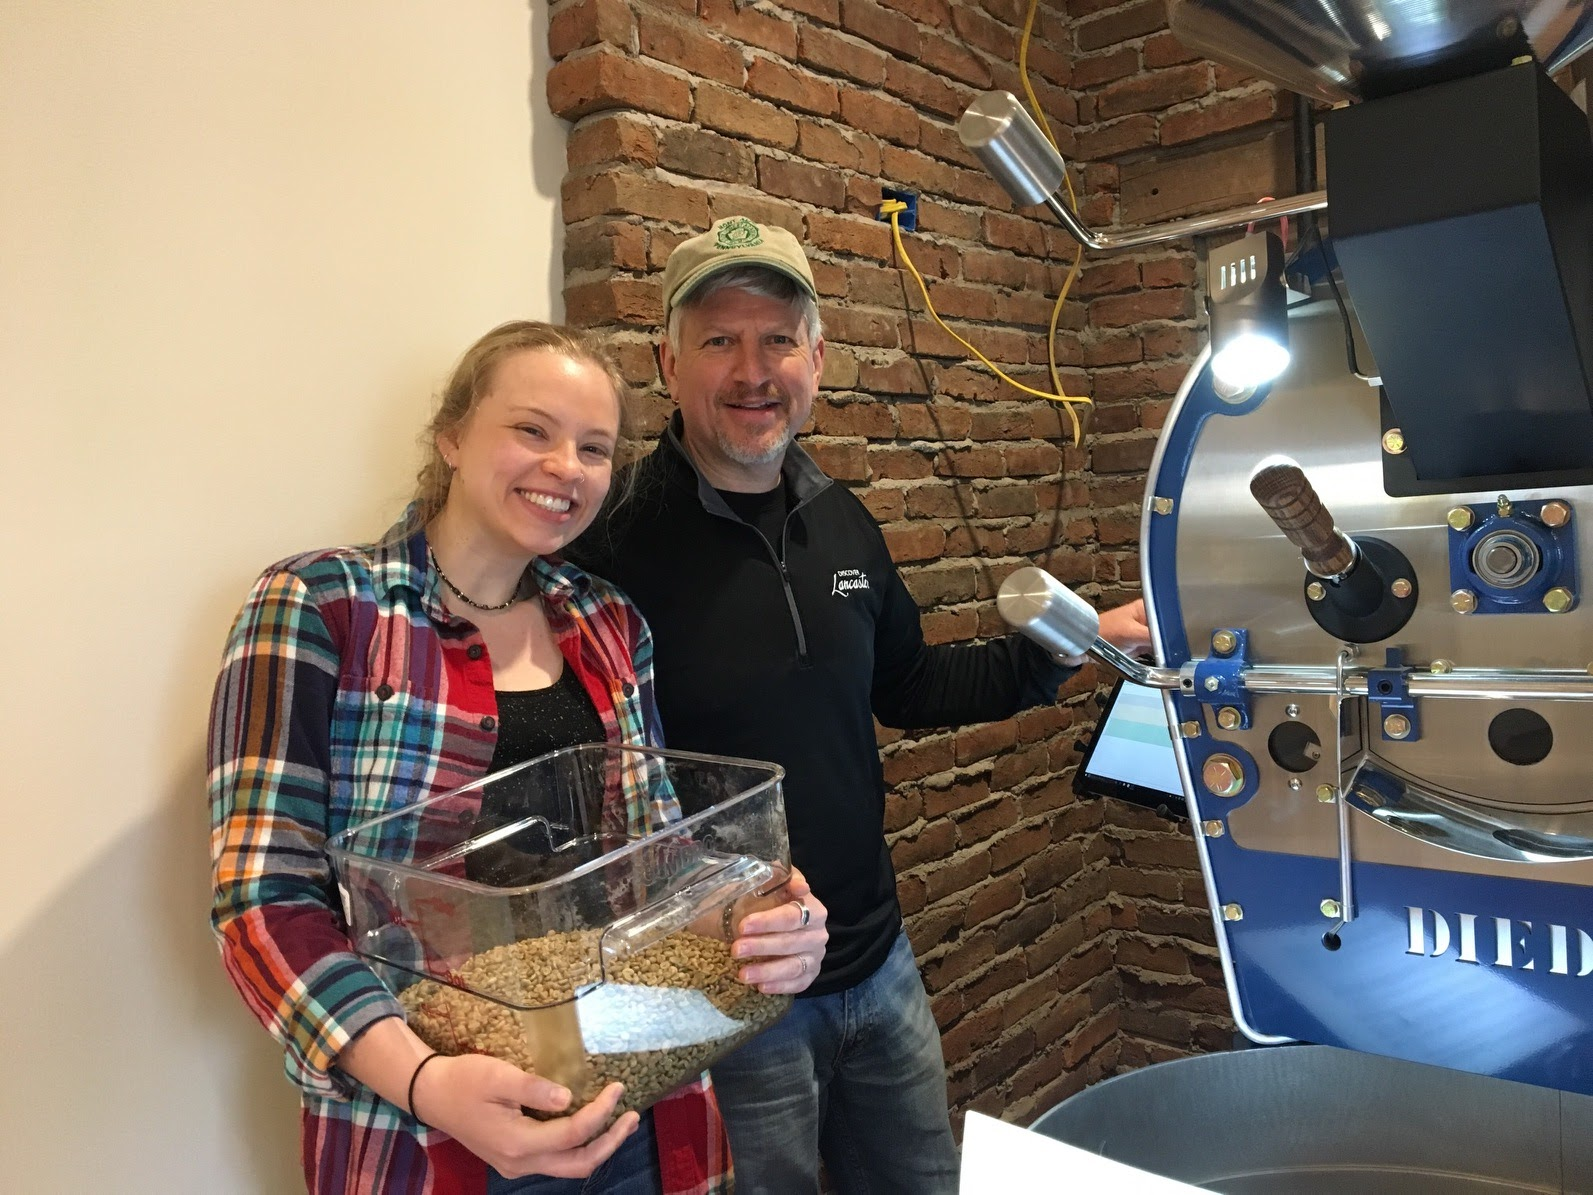 """Our Story… - This is my Dad and me. This picture was taken our first day roasting on our very own coffee roaster back in March of 2017. People always ask me how I got started coffee roasting. And I tell them that it all began with an air popcorn popper on our deck, as it always does. Well we soon (accidentally) destroyed the popcorn popper with overuse- roasting coffee, in any form, is a lot of fun. After that we decided to move to the big leagues, and bought a little 1lb Fresh Roast air roaster. We learned a lot from using the Fresh Roast because we could track temperatures on the computer. You can't do THAT with a popcorn popper! After that it all spiraled very quickly out of control. I told my Dad, """"I want to do this for real. We need to get a roaster- a big one"""". It didn't take long to convince him- corporate life is irritating and stressful. Coffee roasting is certainly not.A few months later we were flying to Ponderay, Idaho for our first roasting class at the Diedrich manufacturing site, where we got to roast on an 10lb roaster. Now we were REALLY in the big leagues. We learned a ton and ordered our roaster (Big Blue as we would name him later) right then and there. Waiting was agony! But our roaster arrived in pristine condition (after having been built to order) in March of 2017. We quickly got to roasting and tasting in preparation for the opening of the General Store. I have never consumed so much coffee (with so much regret) as I did when we were working on the proportions for the house blend. Shaking slightly, and very dehydrated, we triumphantly declared that we had found the perfect blend!We have been growing ever since and are learning something new with every roast. Coffee roasting is quite an adventure. Each bean is different, and we enjoy finding the perfect roast, to give people the best tasting coffee possible. Come visit us at the Red Canoe General Store to see Big Blue and try the coffee that all started with a popcorn popper."""